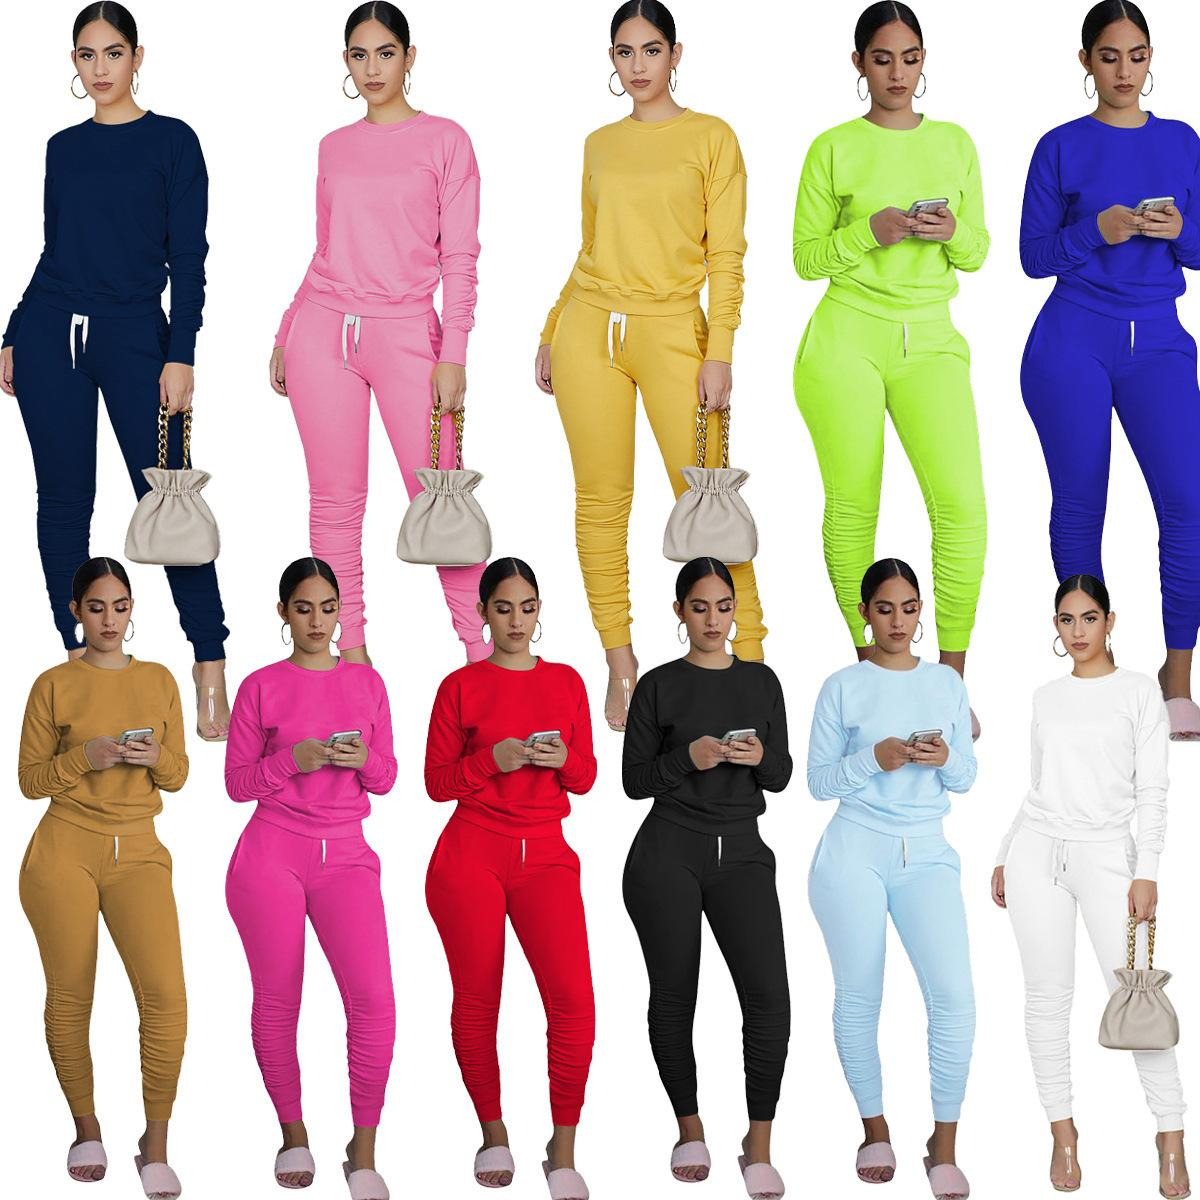 Mulheres Designers Roupa 2020 Solid Color Manga comprida Pullover Sportswear Casual Two Piece Outfits Mulheres Plus Size Vestuário